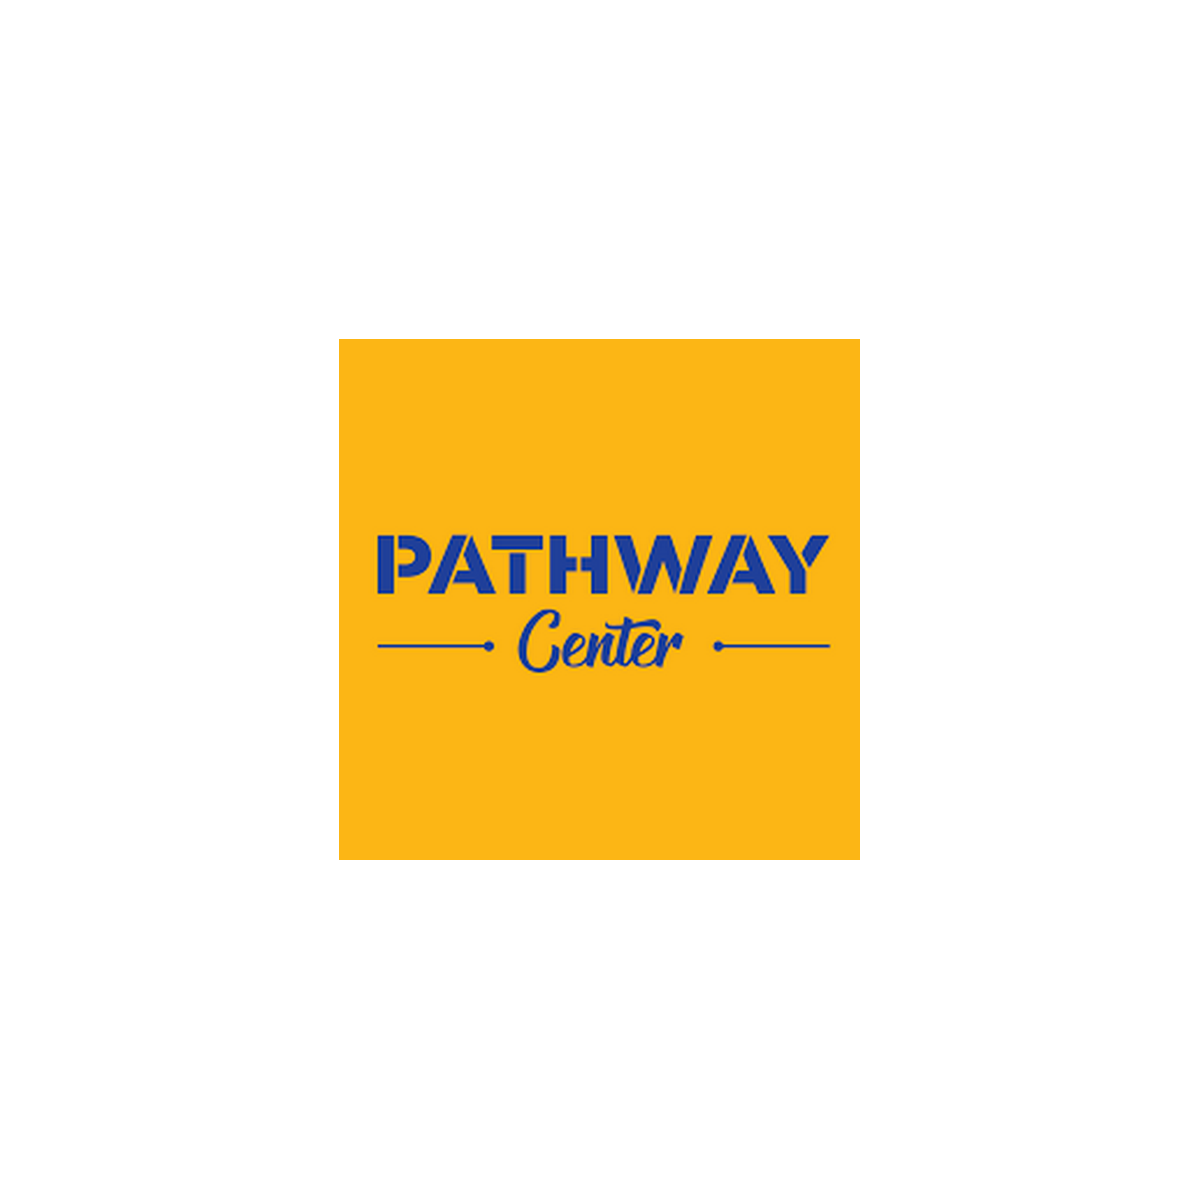 Pathway Center Start-up.ma